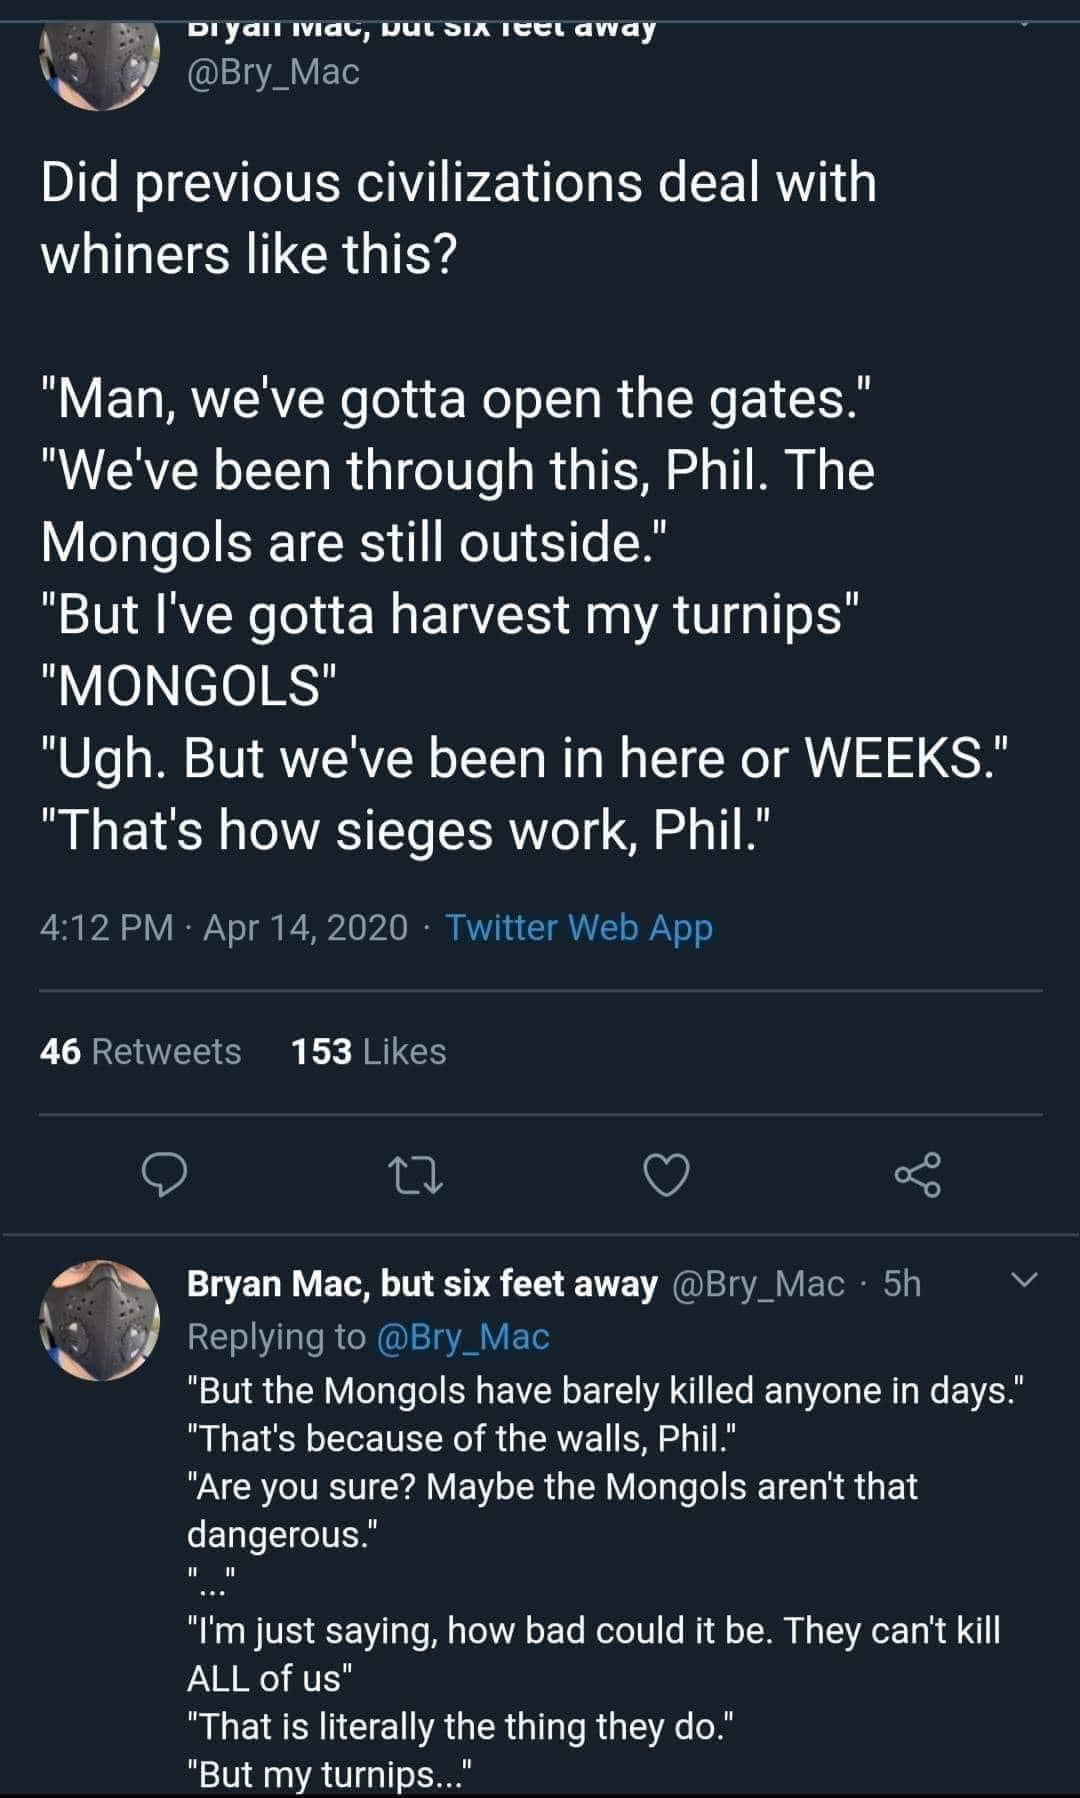 Mongols and Turnips